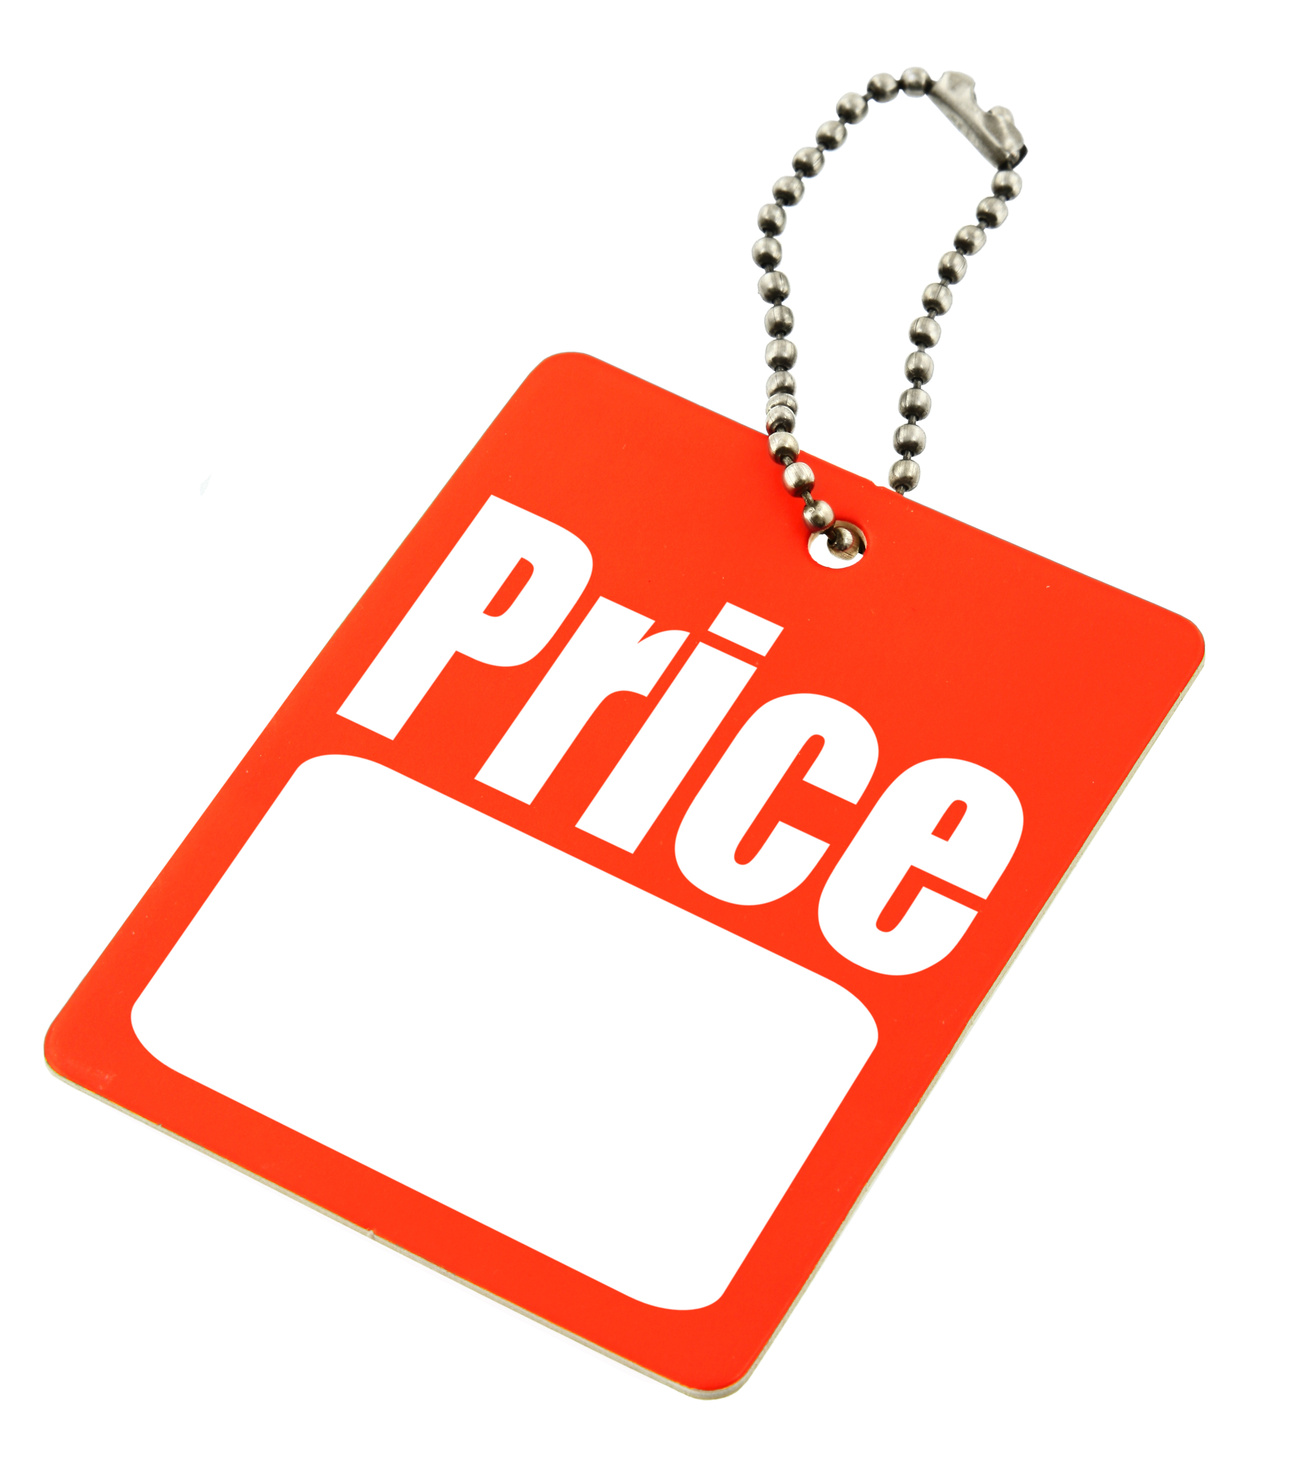 Vehicle Tracking Prices  Why So Secret?  Satmo Vehicle. Wicker Chairs Dining Room. Carpet Rugs For Living Room. Wooden Units Living Room. Decoration Living Room Ideas. Decor For Small Living Room. Ideas For Home Decoration Living Room. Paint Color Ideas For Small Living Room. Moroccan Style Living Room Furniture